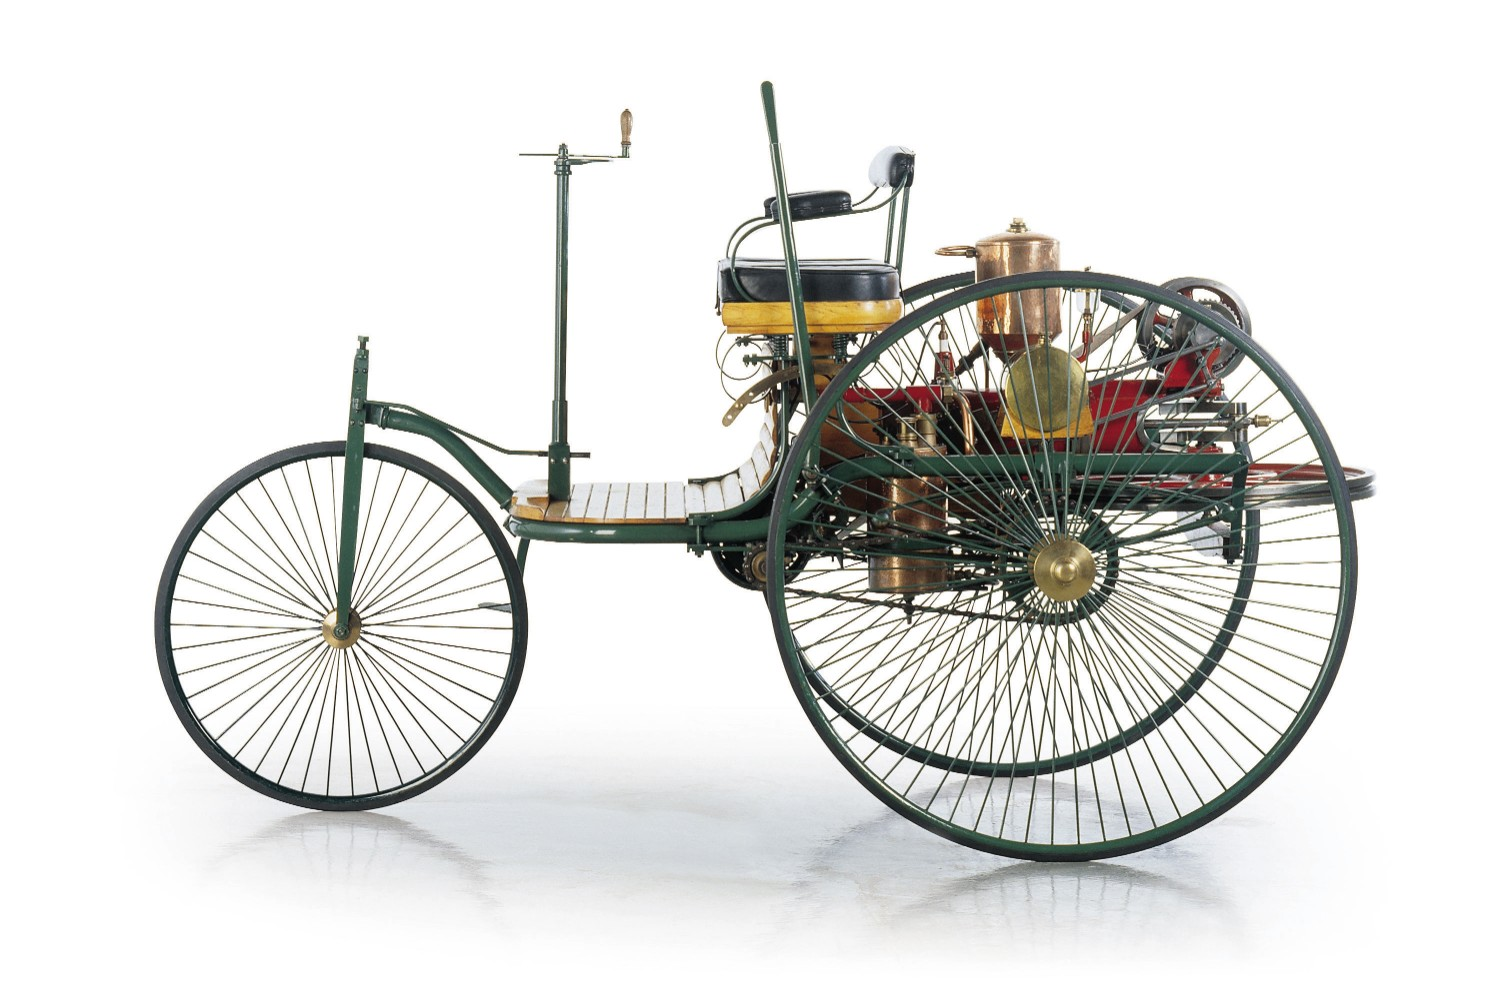 Mercedes-Benz Invented the First Car in the World - Automotive ...